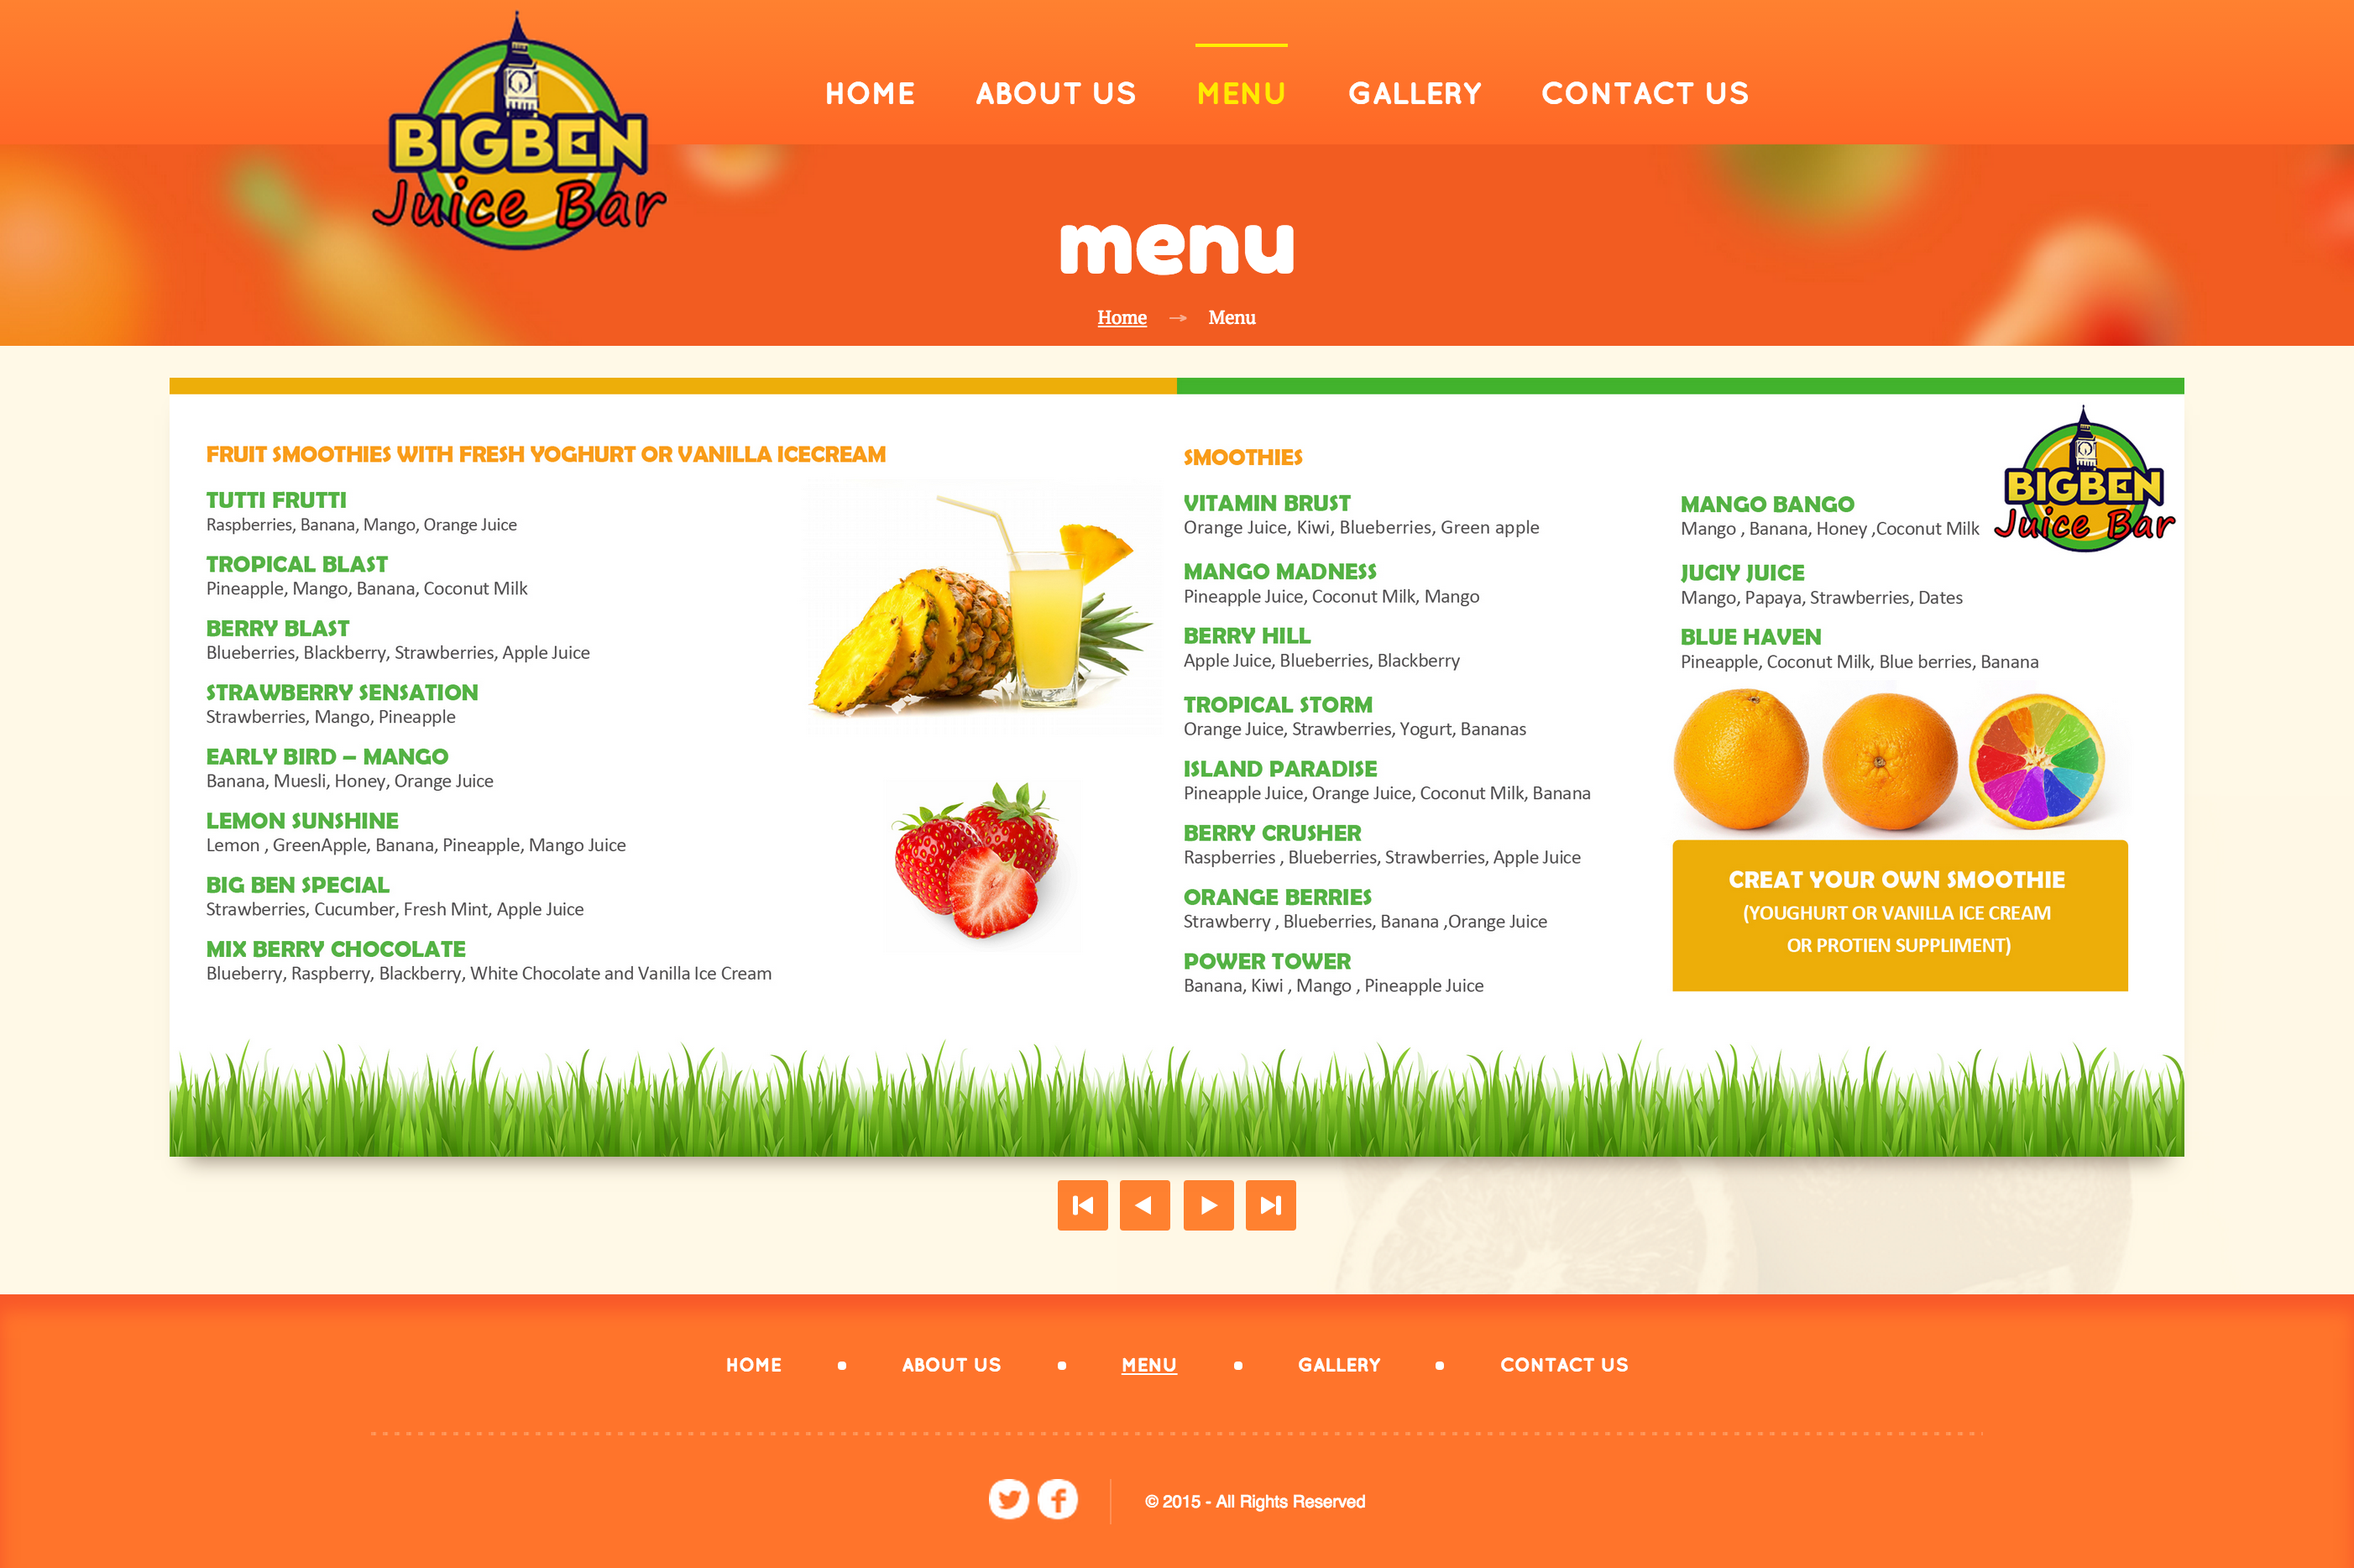 Big Ben Juice Bar - Murtaza - Web Designer and Developer